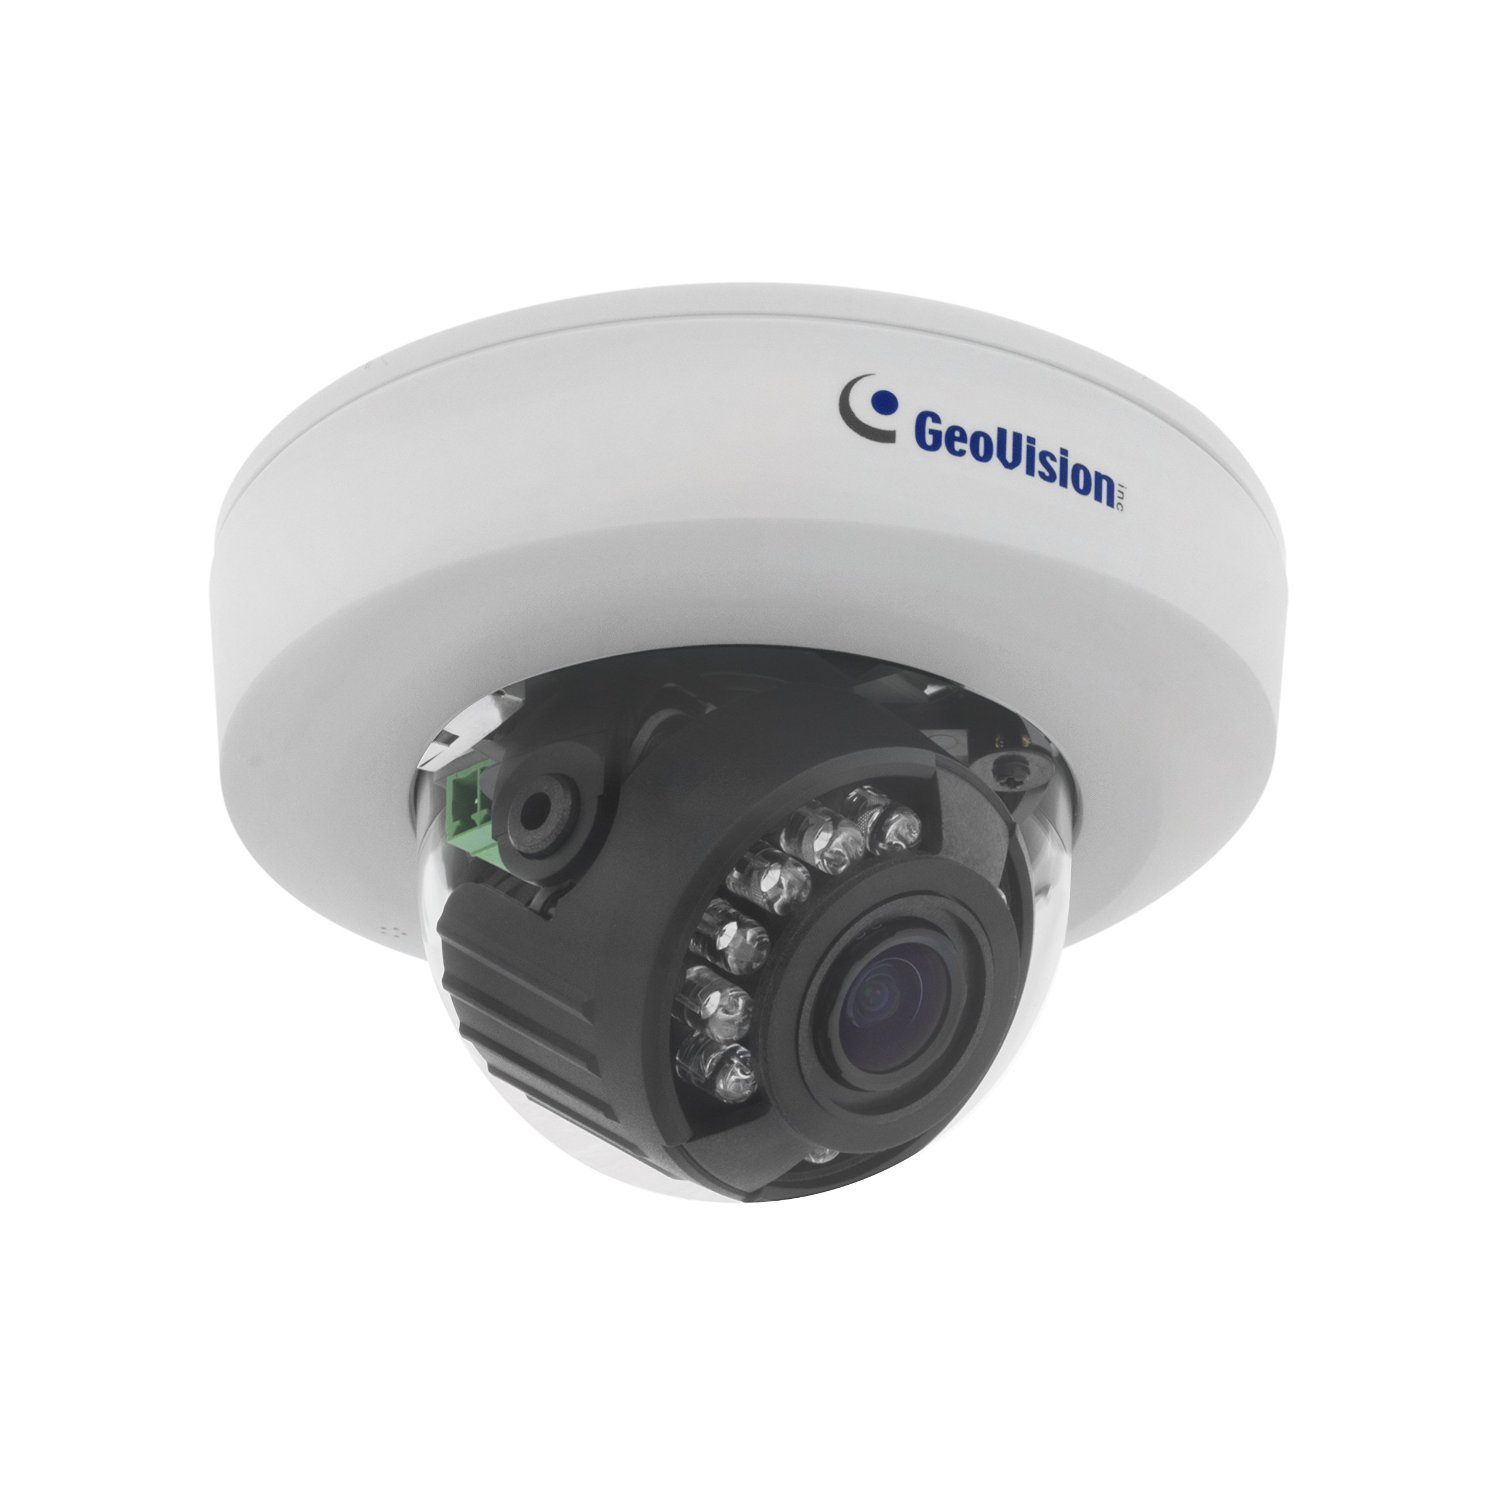 Geovision GV-EFD1100-0f | Target series 1.3MP 2.8mm, H.264, Low Lux, WDR, IR, IP Mini Fixed Dome Camera [並行輸入品] B01JJHAOLE